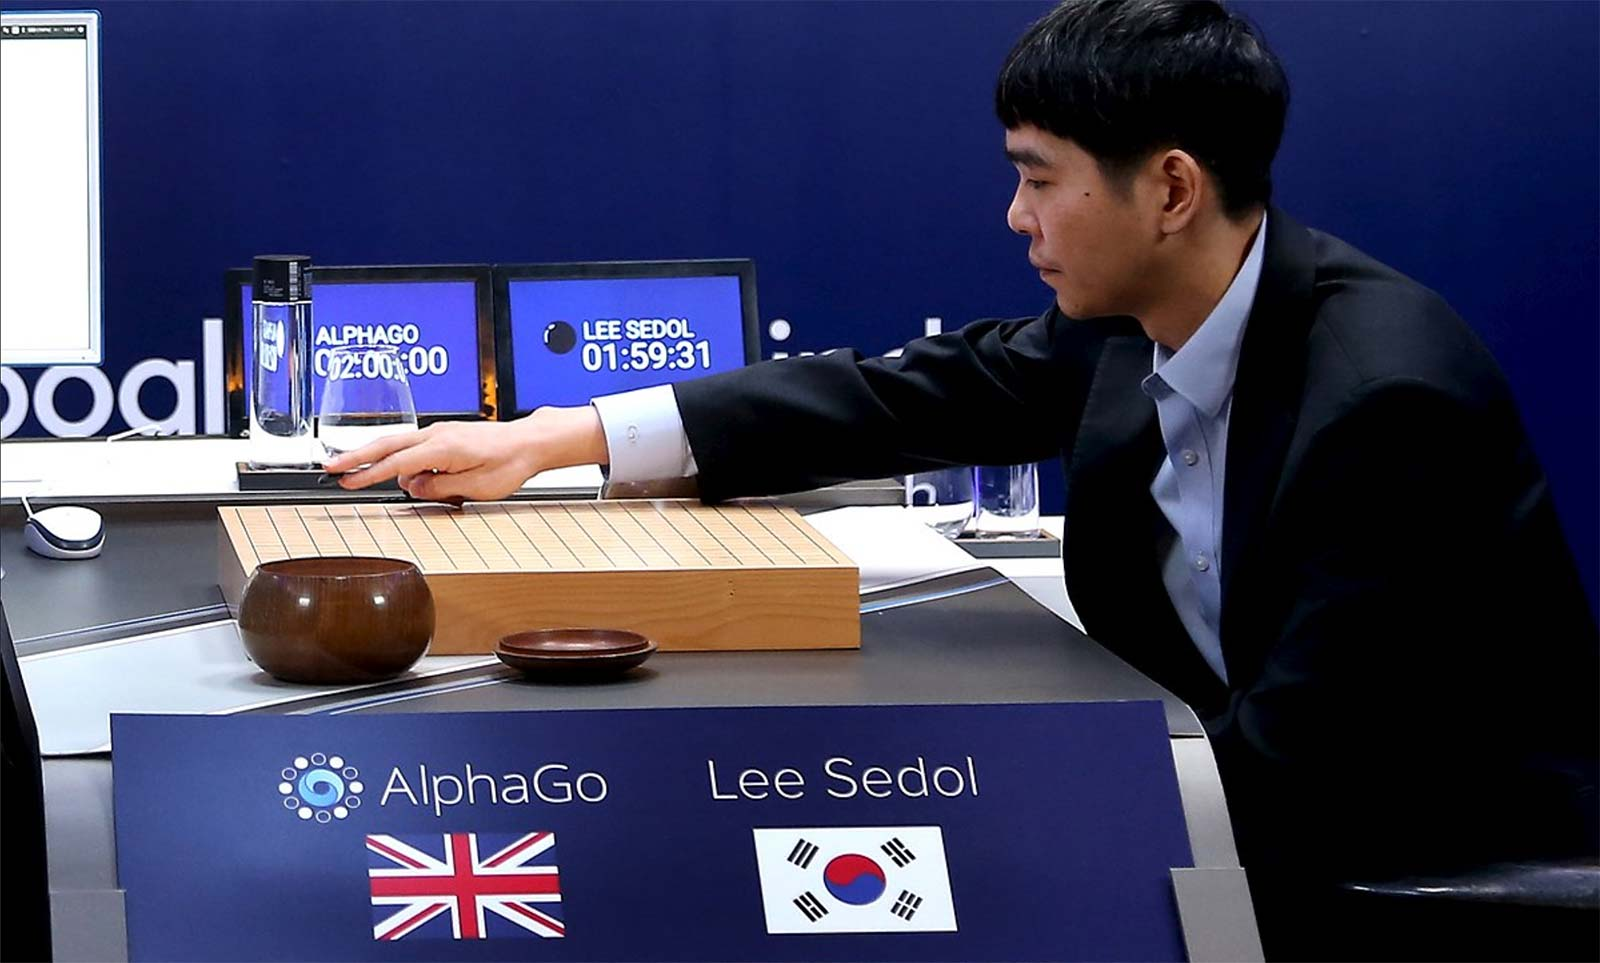 AlphaGo Competition